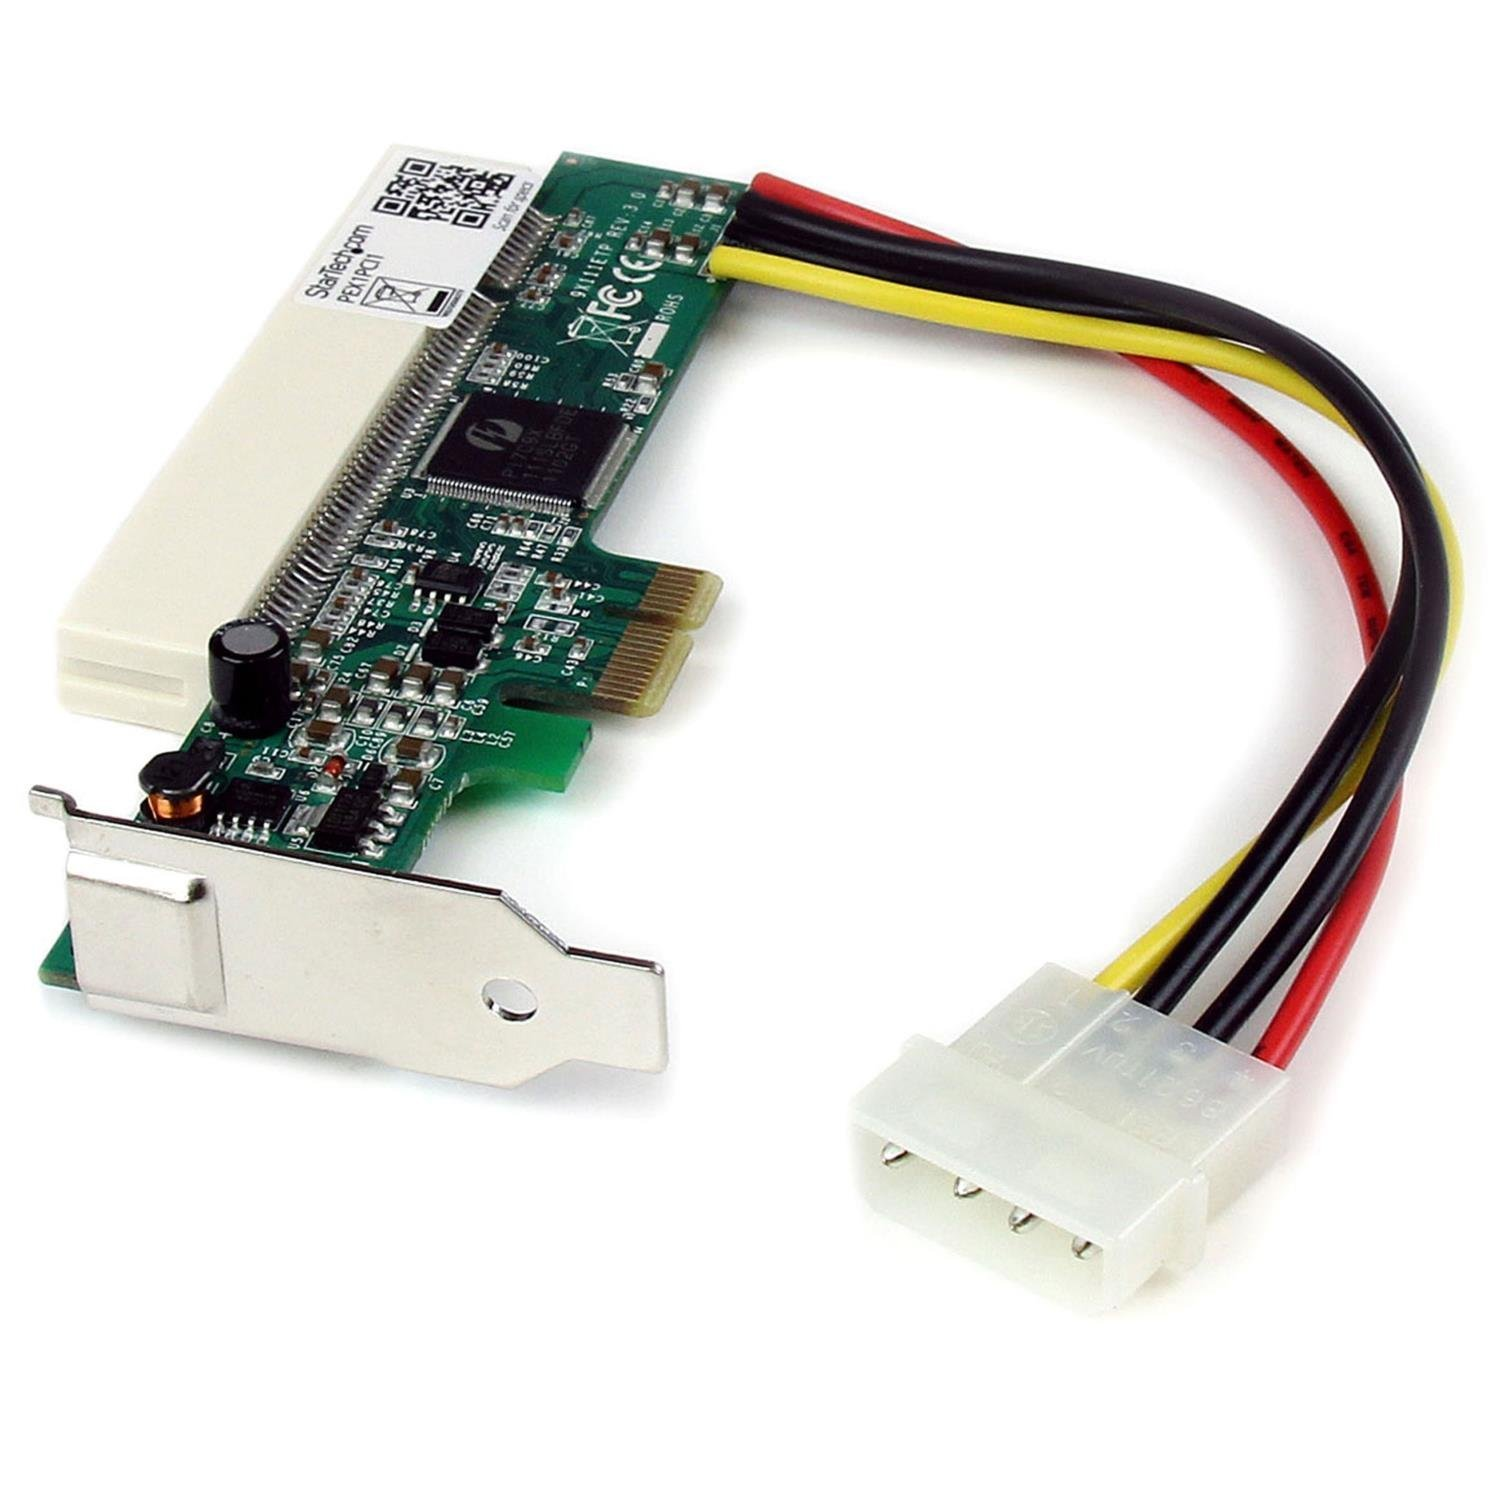 Card PCI-E to PCI